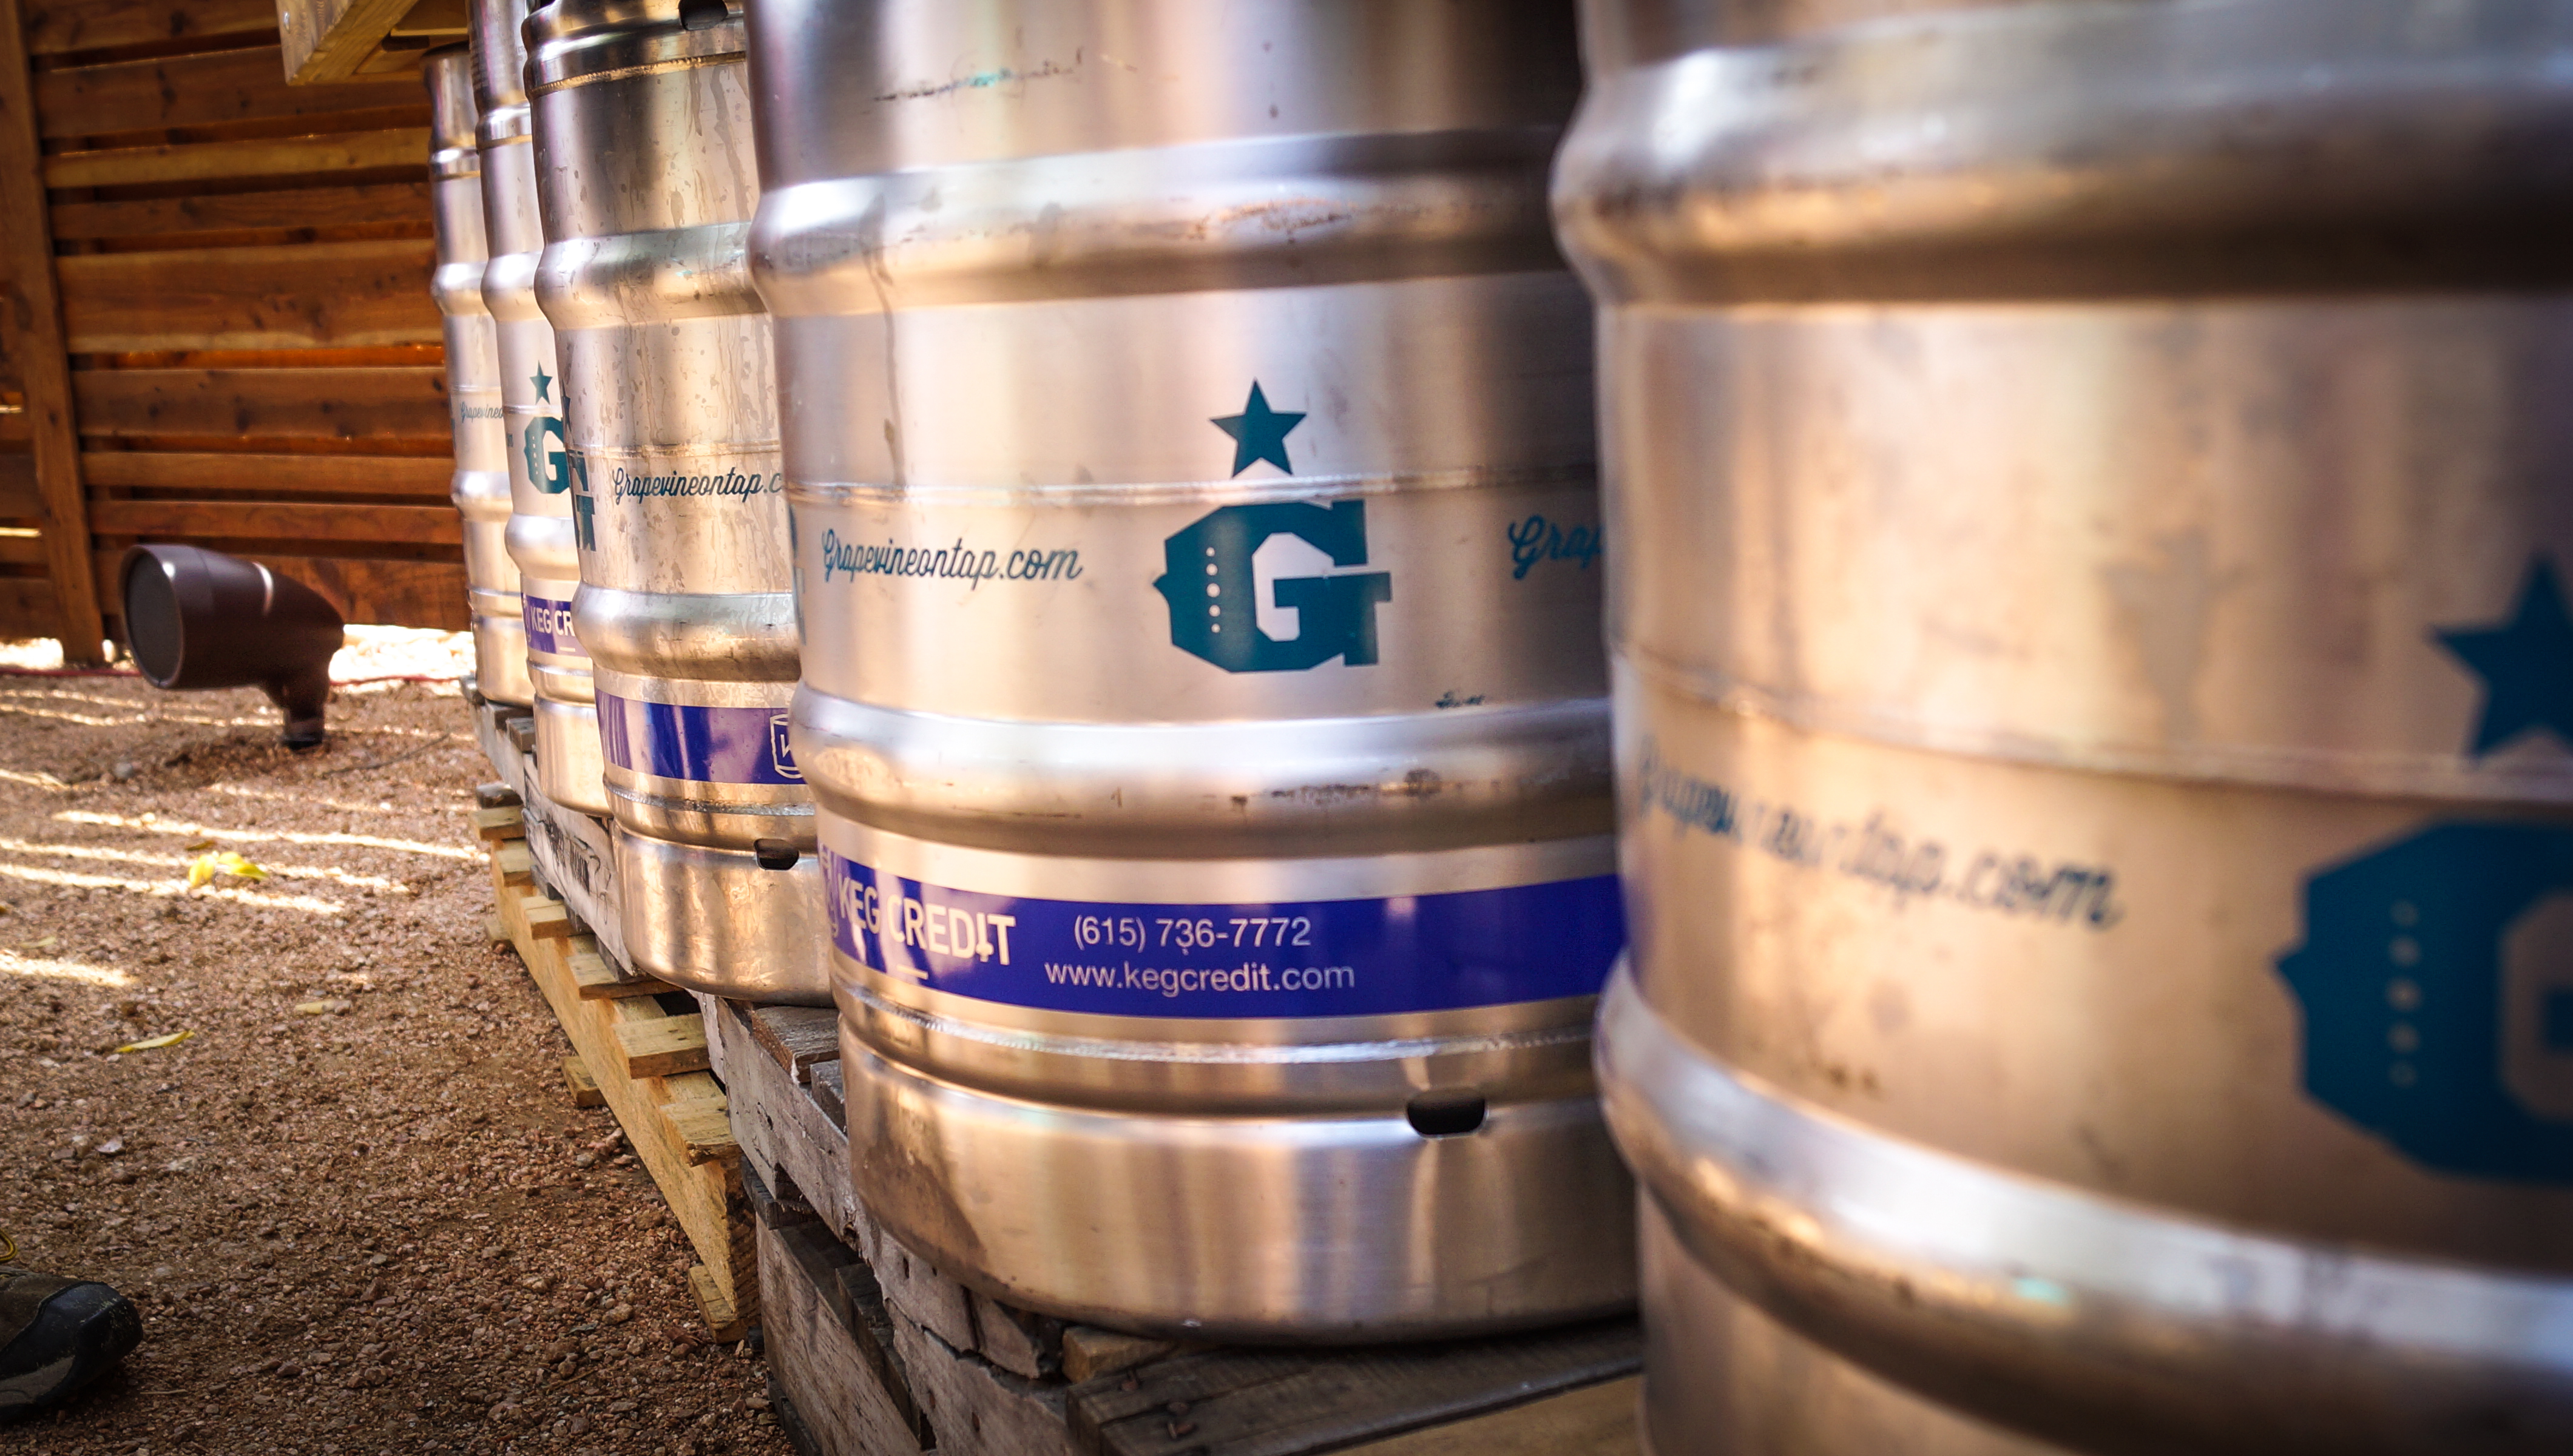 Grapevine Craft Brewery Offers a variety of brews